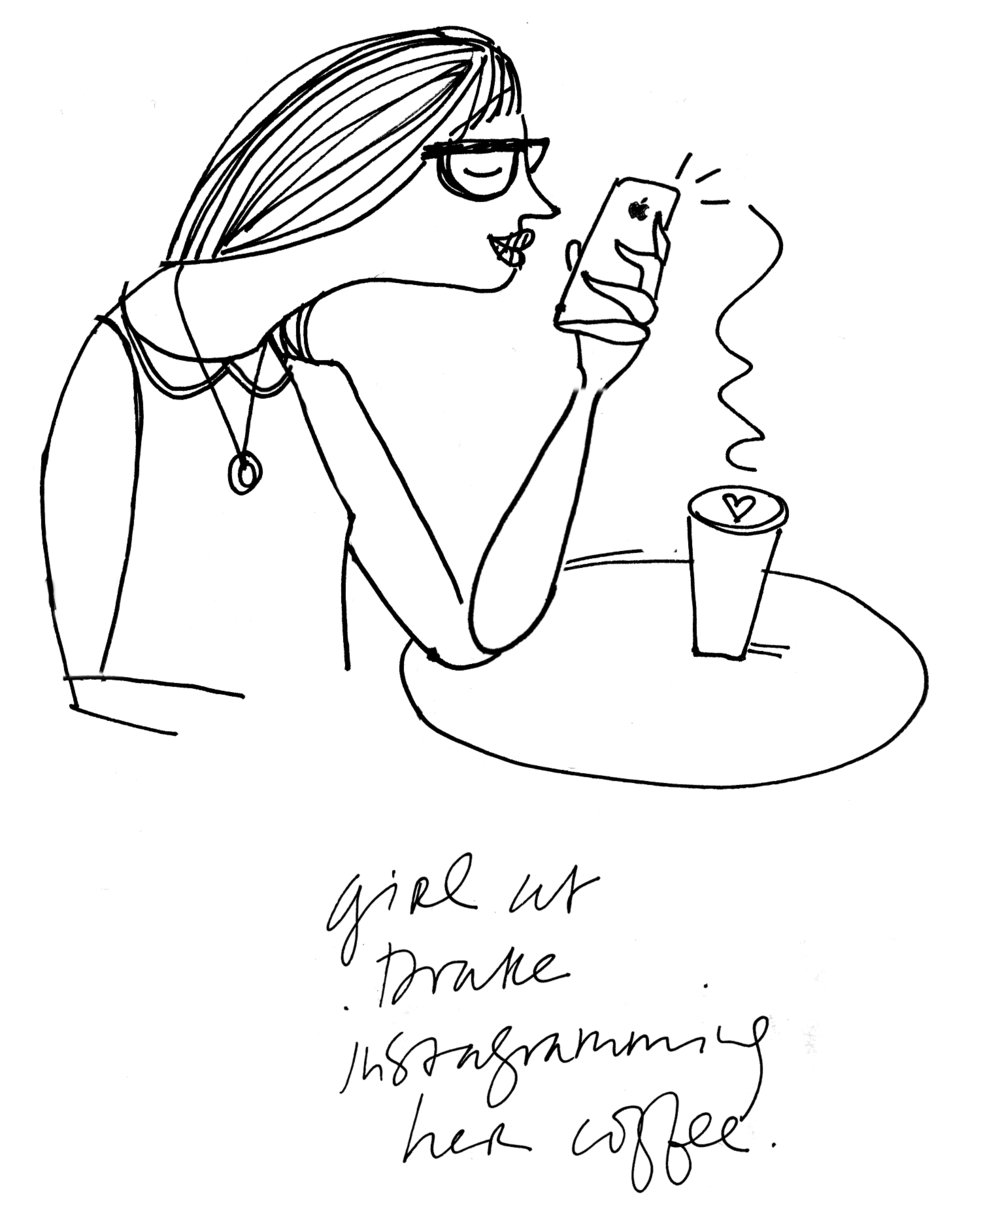 sketch girl drake cafe.jpg